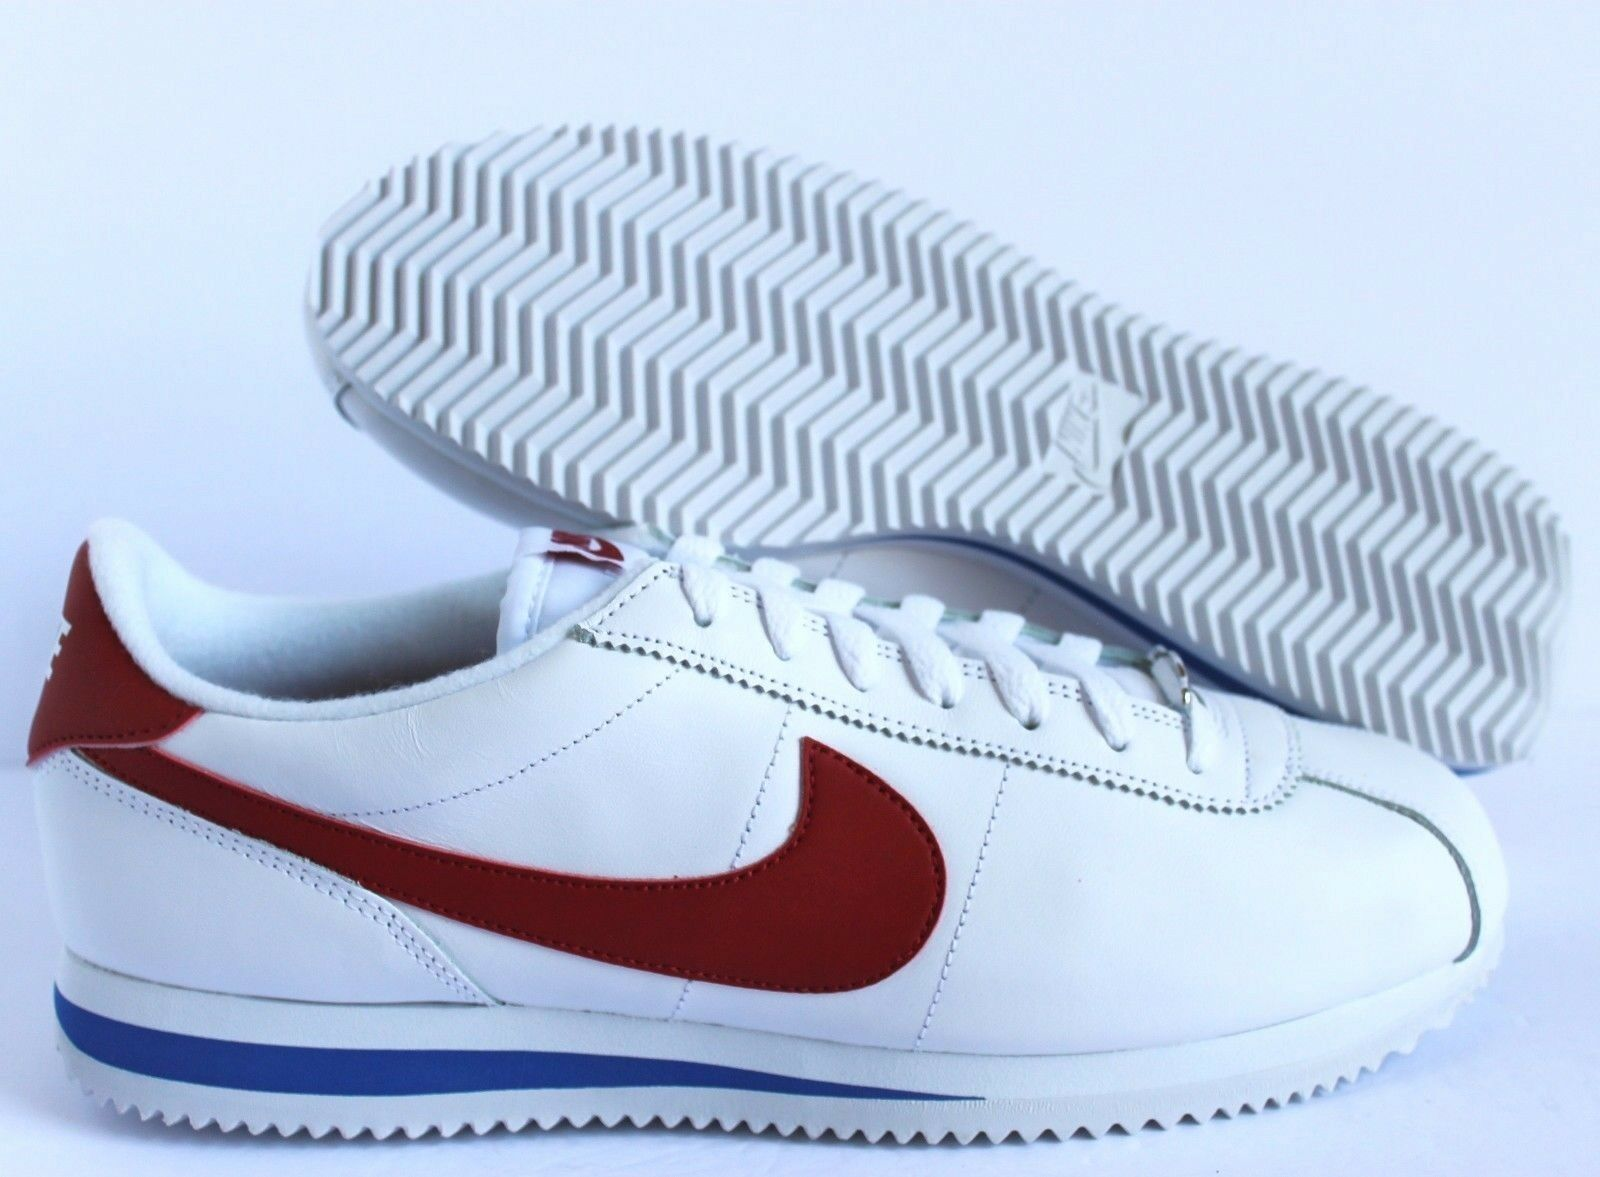 Nike cortez di cuoio og forrest gump white-red sz - 882254-164]